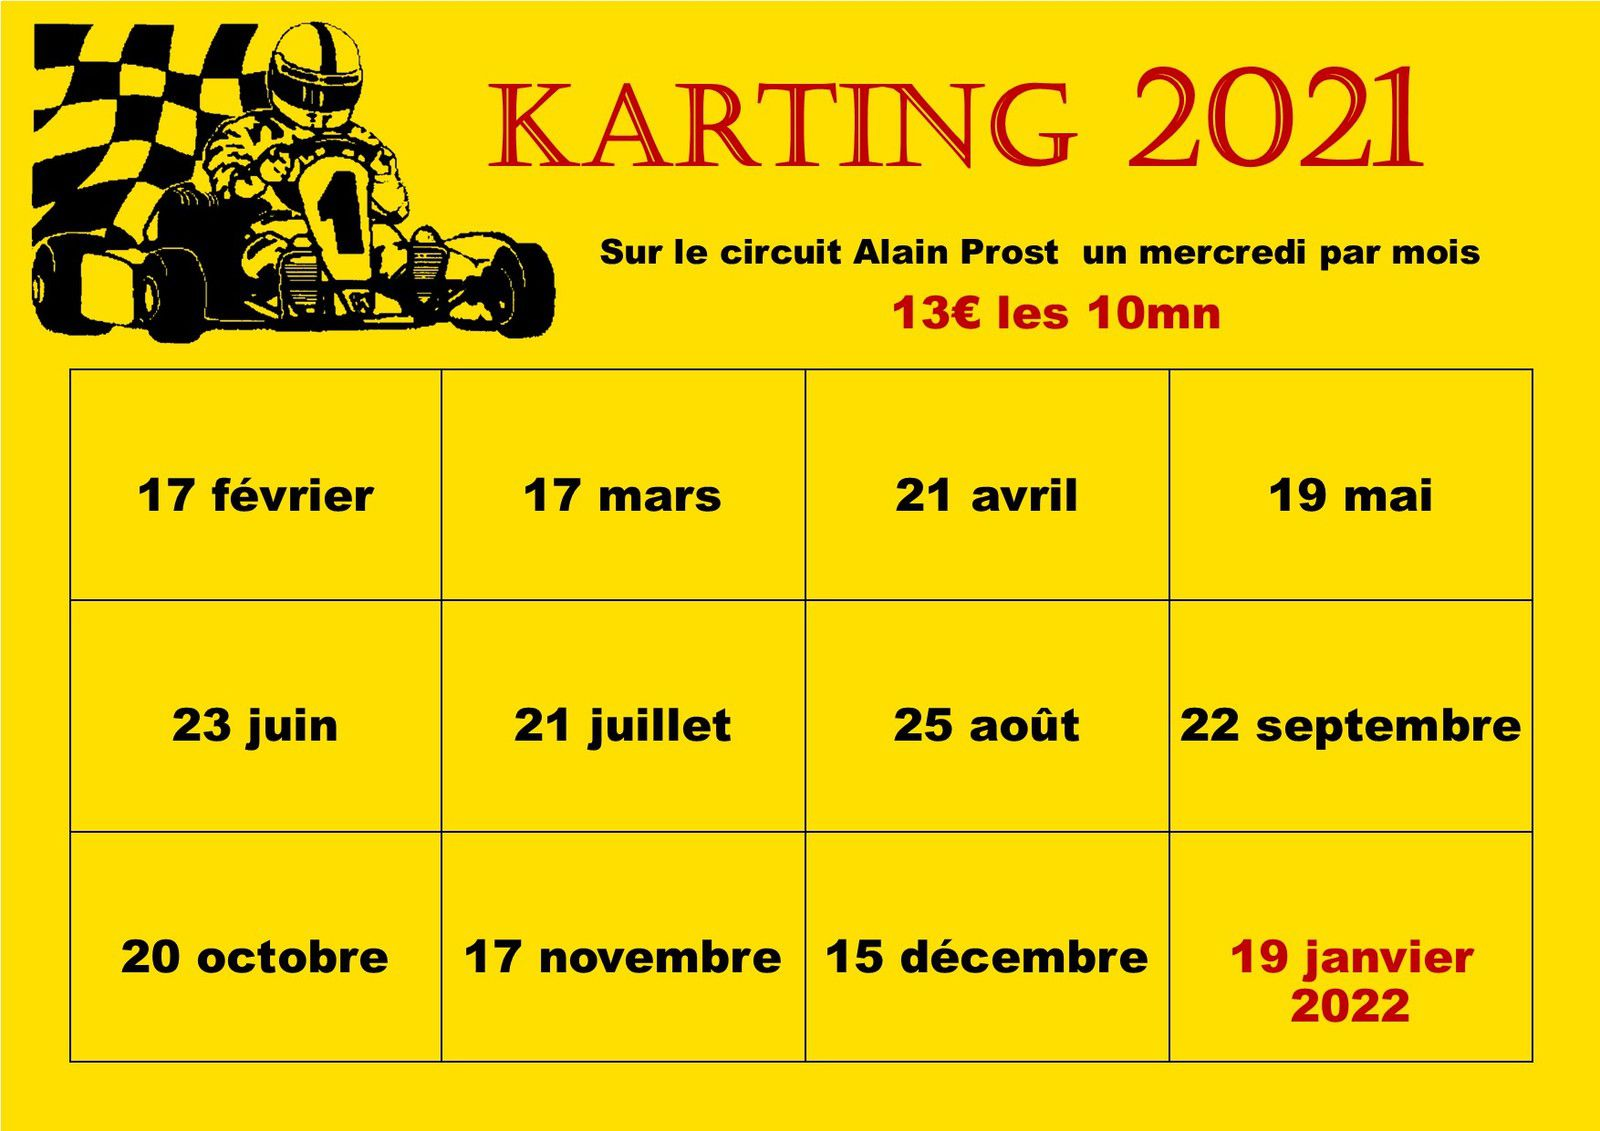 Calendrier Karting 2021